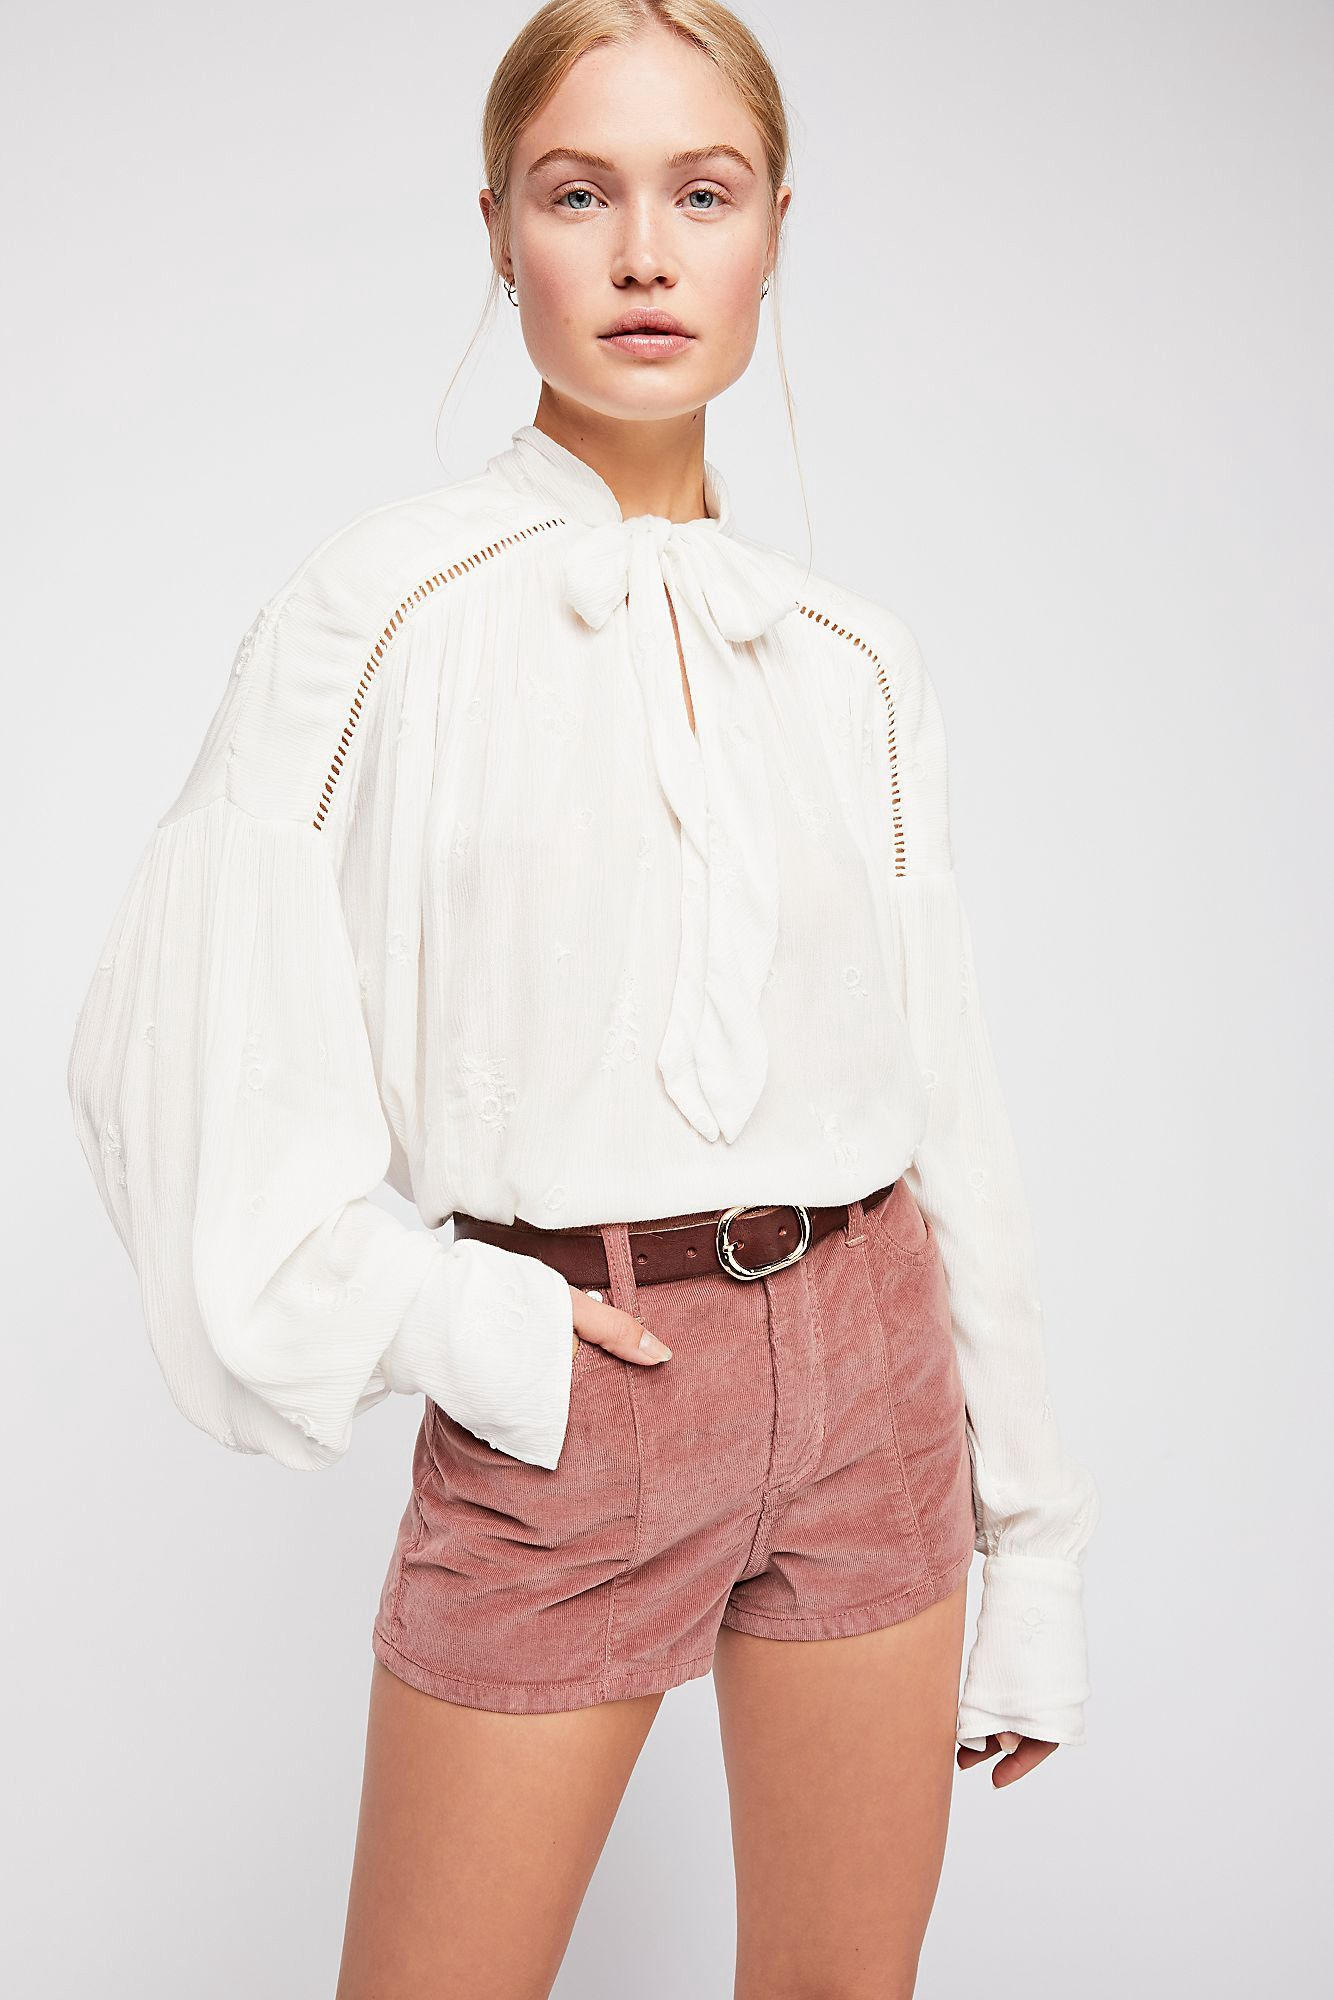 9c08f1675c01cc Free People Wishful Moments Blouse - L   Products   Blouse, Fancy ...